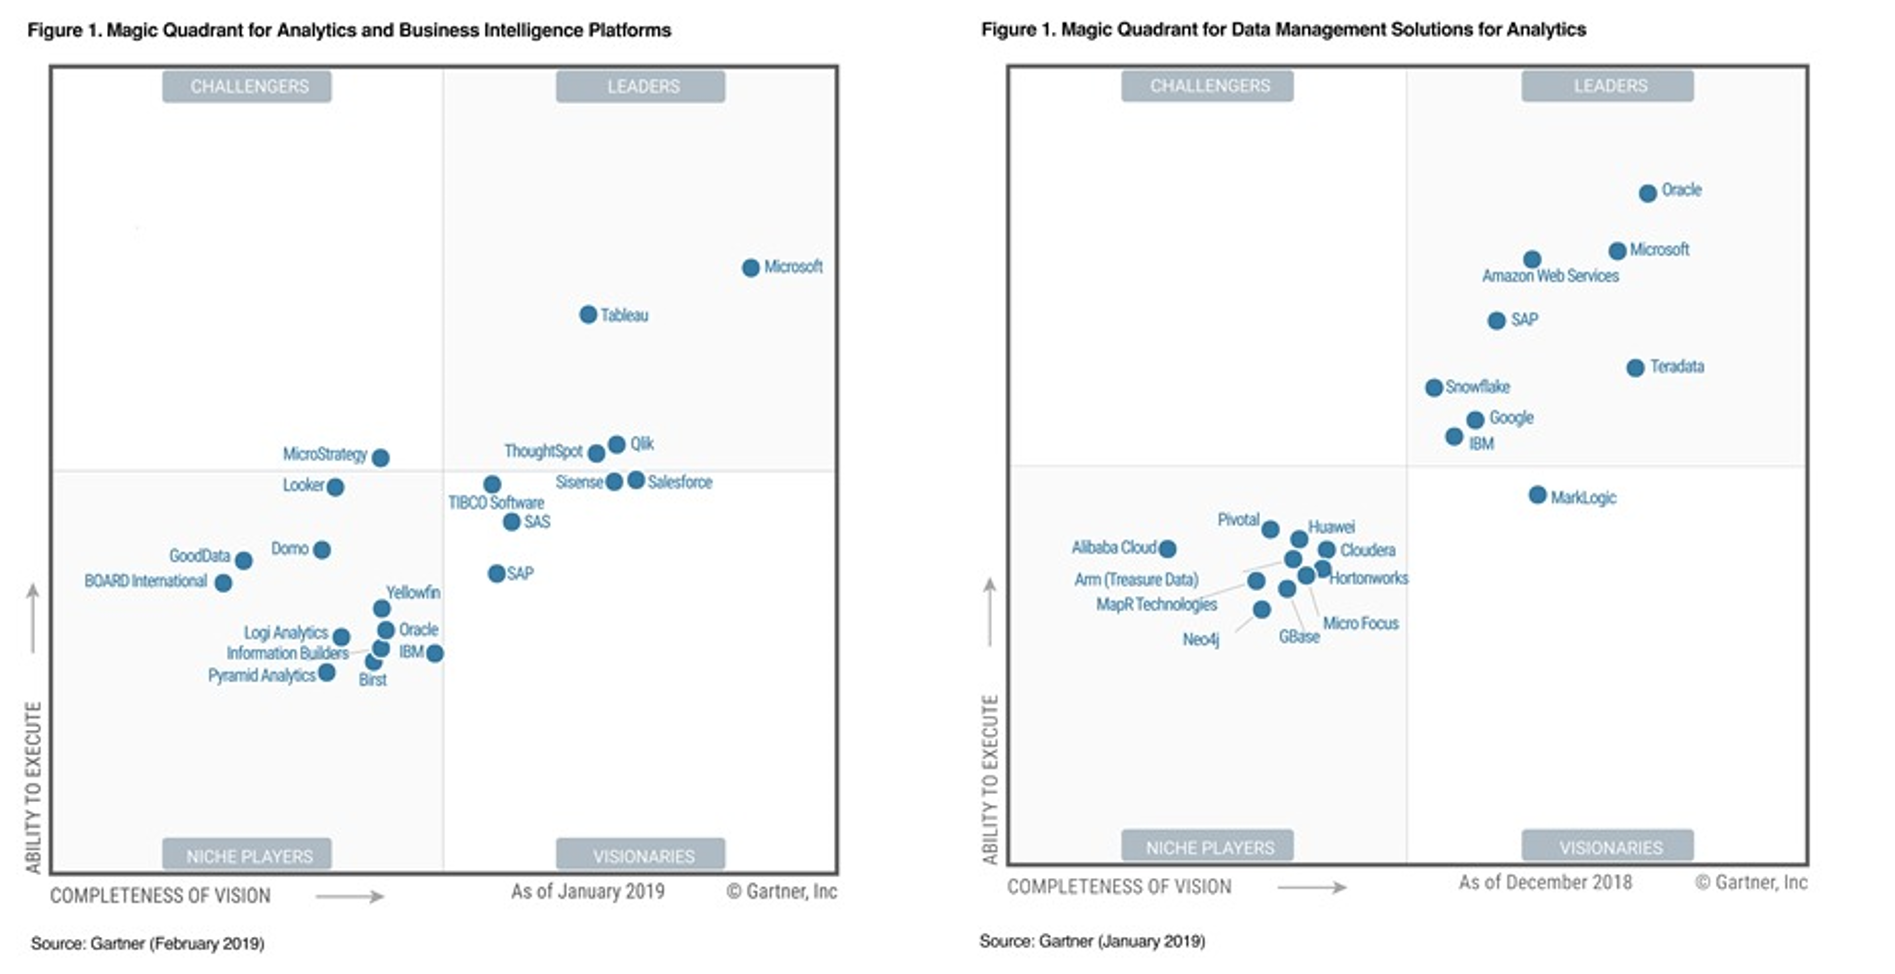 Gartner 2019 Magic Quadrant for Analytics and Business Intelligence Platforms and the Gartner 2019 Magic Quadrant for Data Management Solutions for Analytics